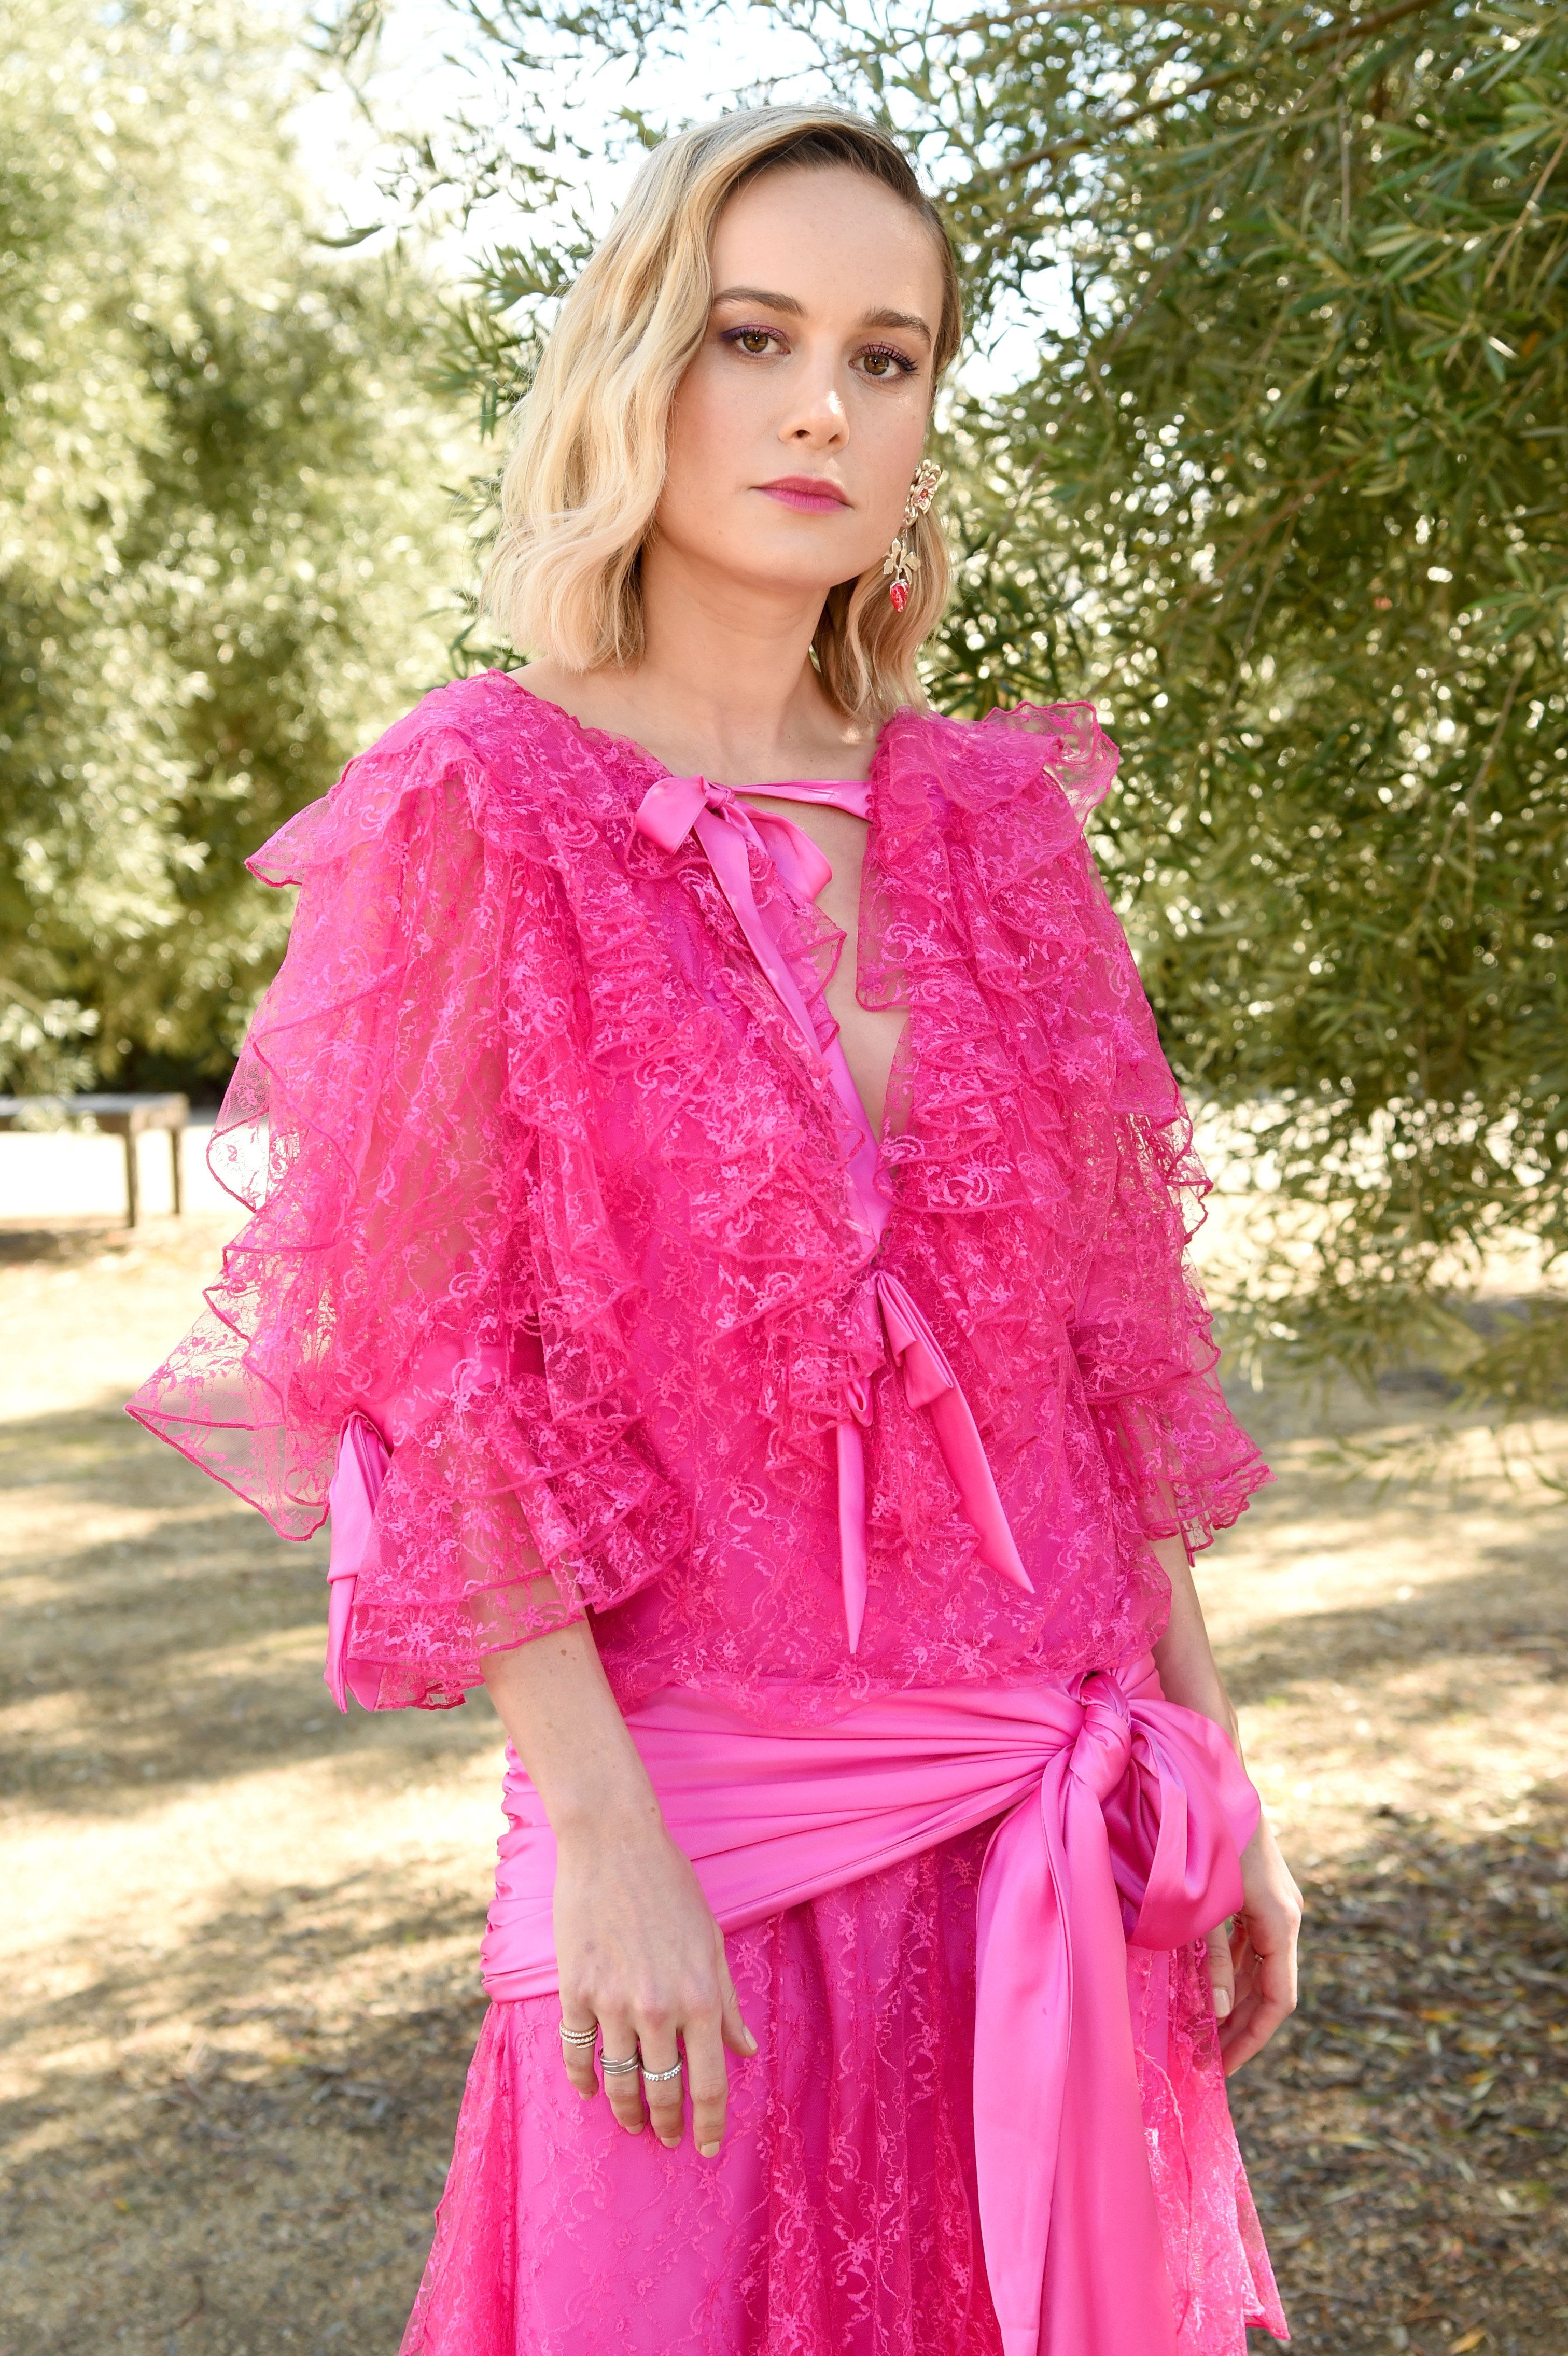 PASADENA, CA - FEBRUARY 05:  Brie Larson attends JNSQ Rose Cru debuts alongside Rodarte FW/19 Runway Show at Huntington Library on February 5, 2019 in Pasadena, California.  (Photo by Michael Kovac/Getty Images for JNSQ Wines)